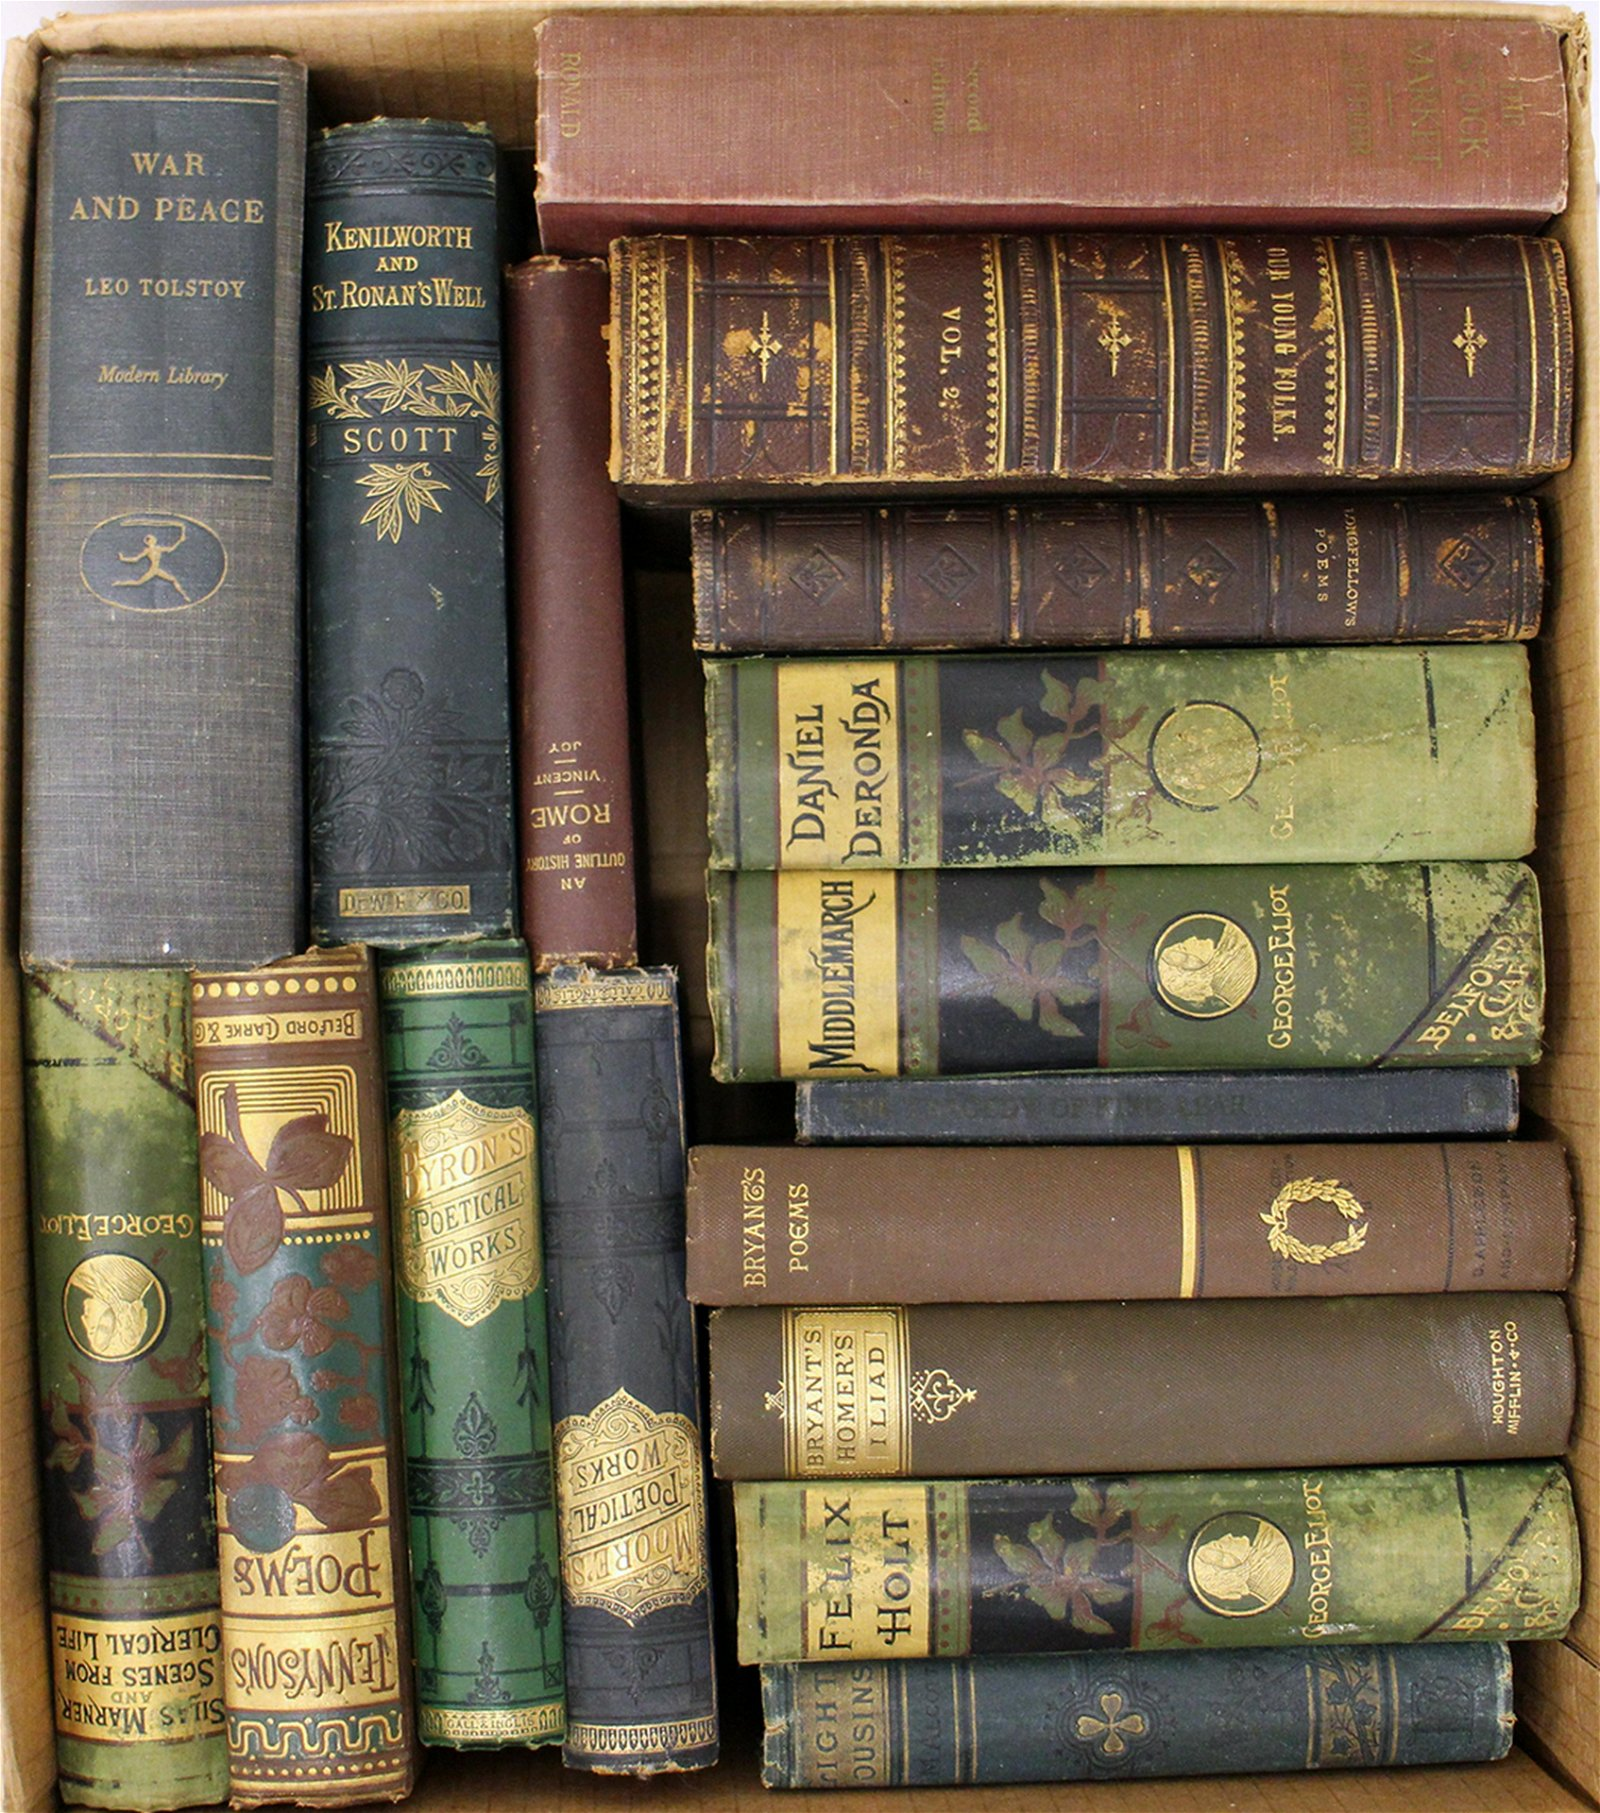 ANTIQUE 1800's CLASSIC BOOK COLLECTION